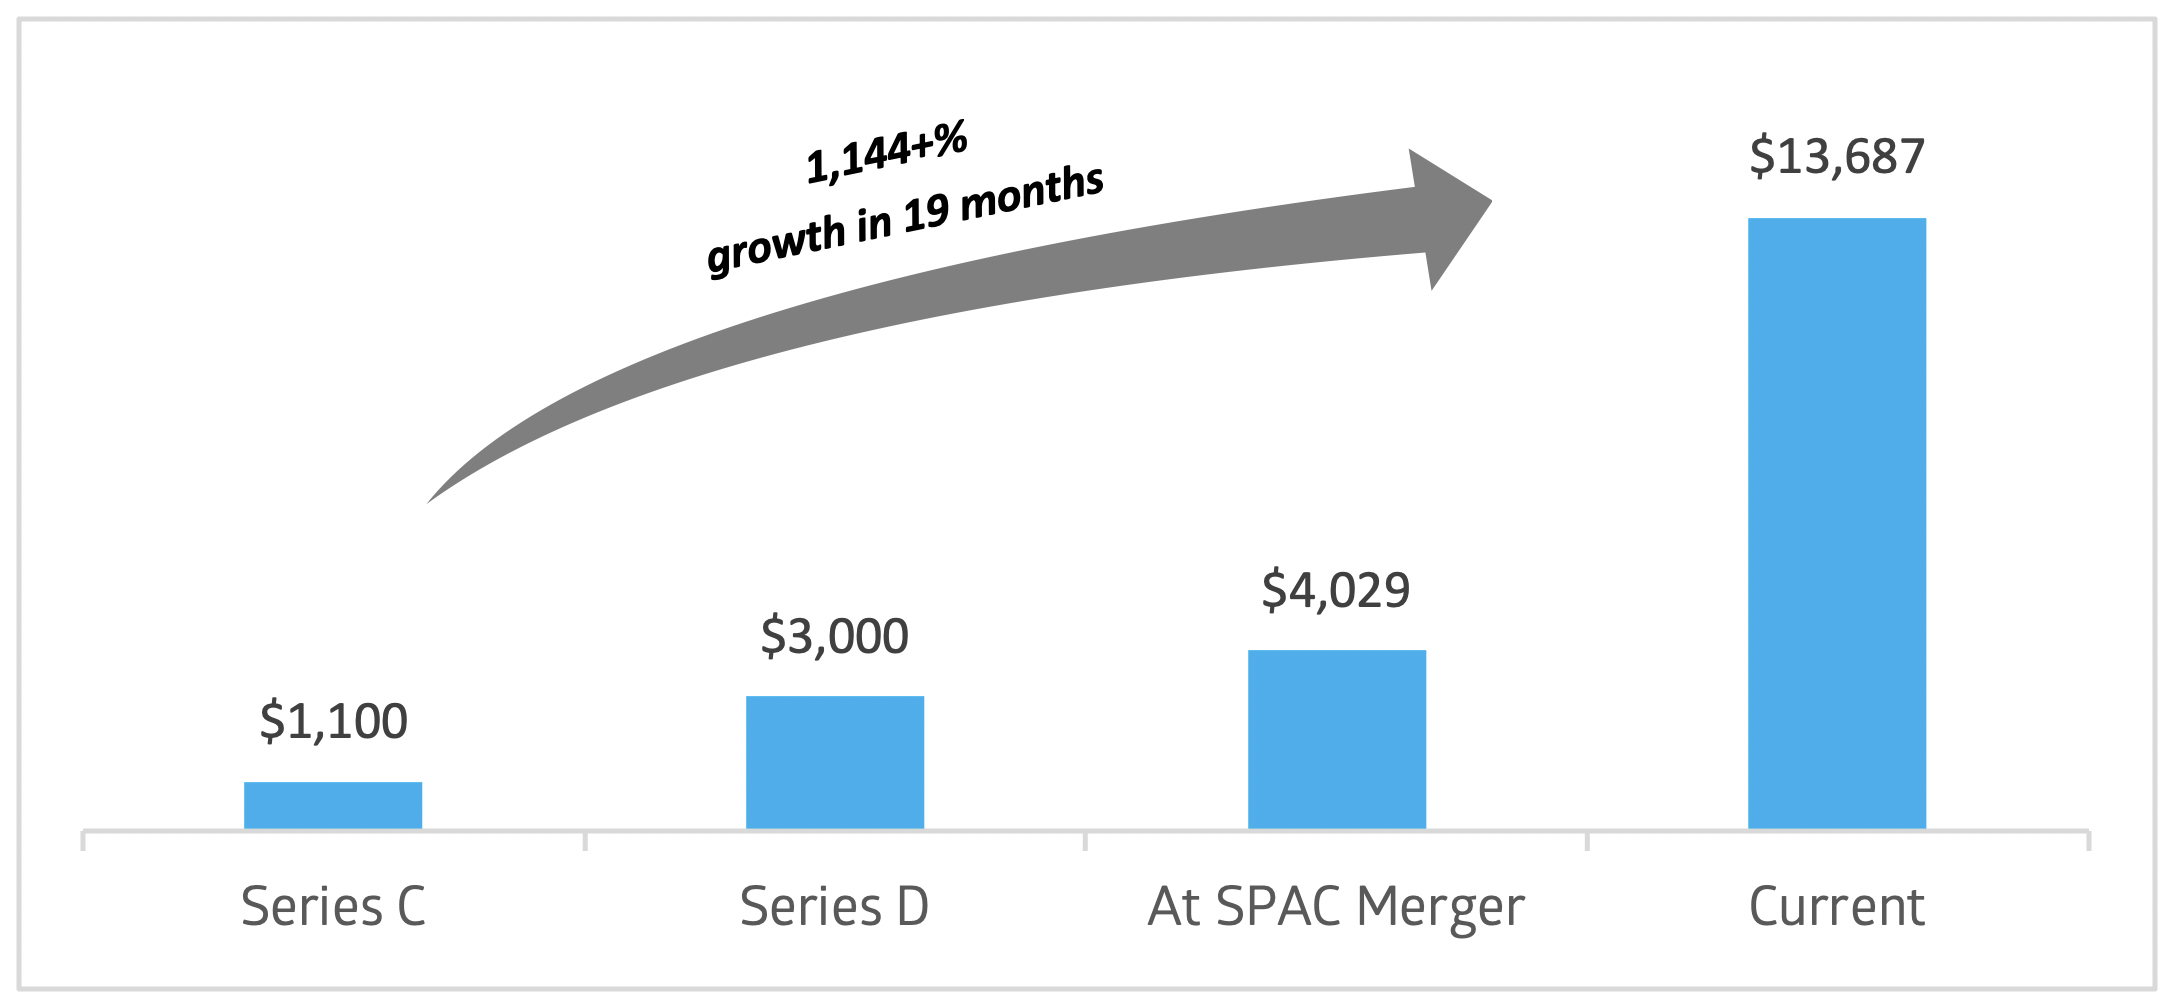 Chart showing the 1,144+% valuation growth of $VTIQ $NKLA from Series C, Series D, at SPAC Merger, and current market valuation